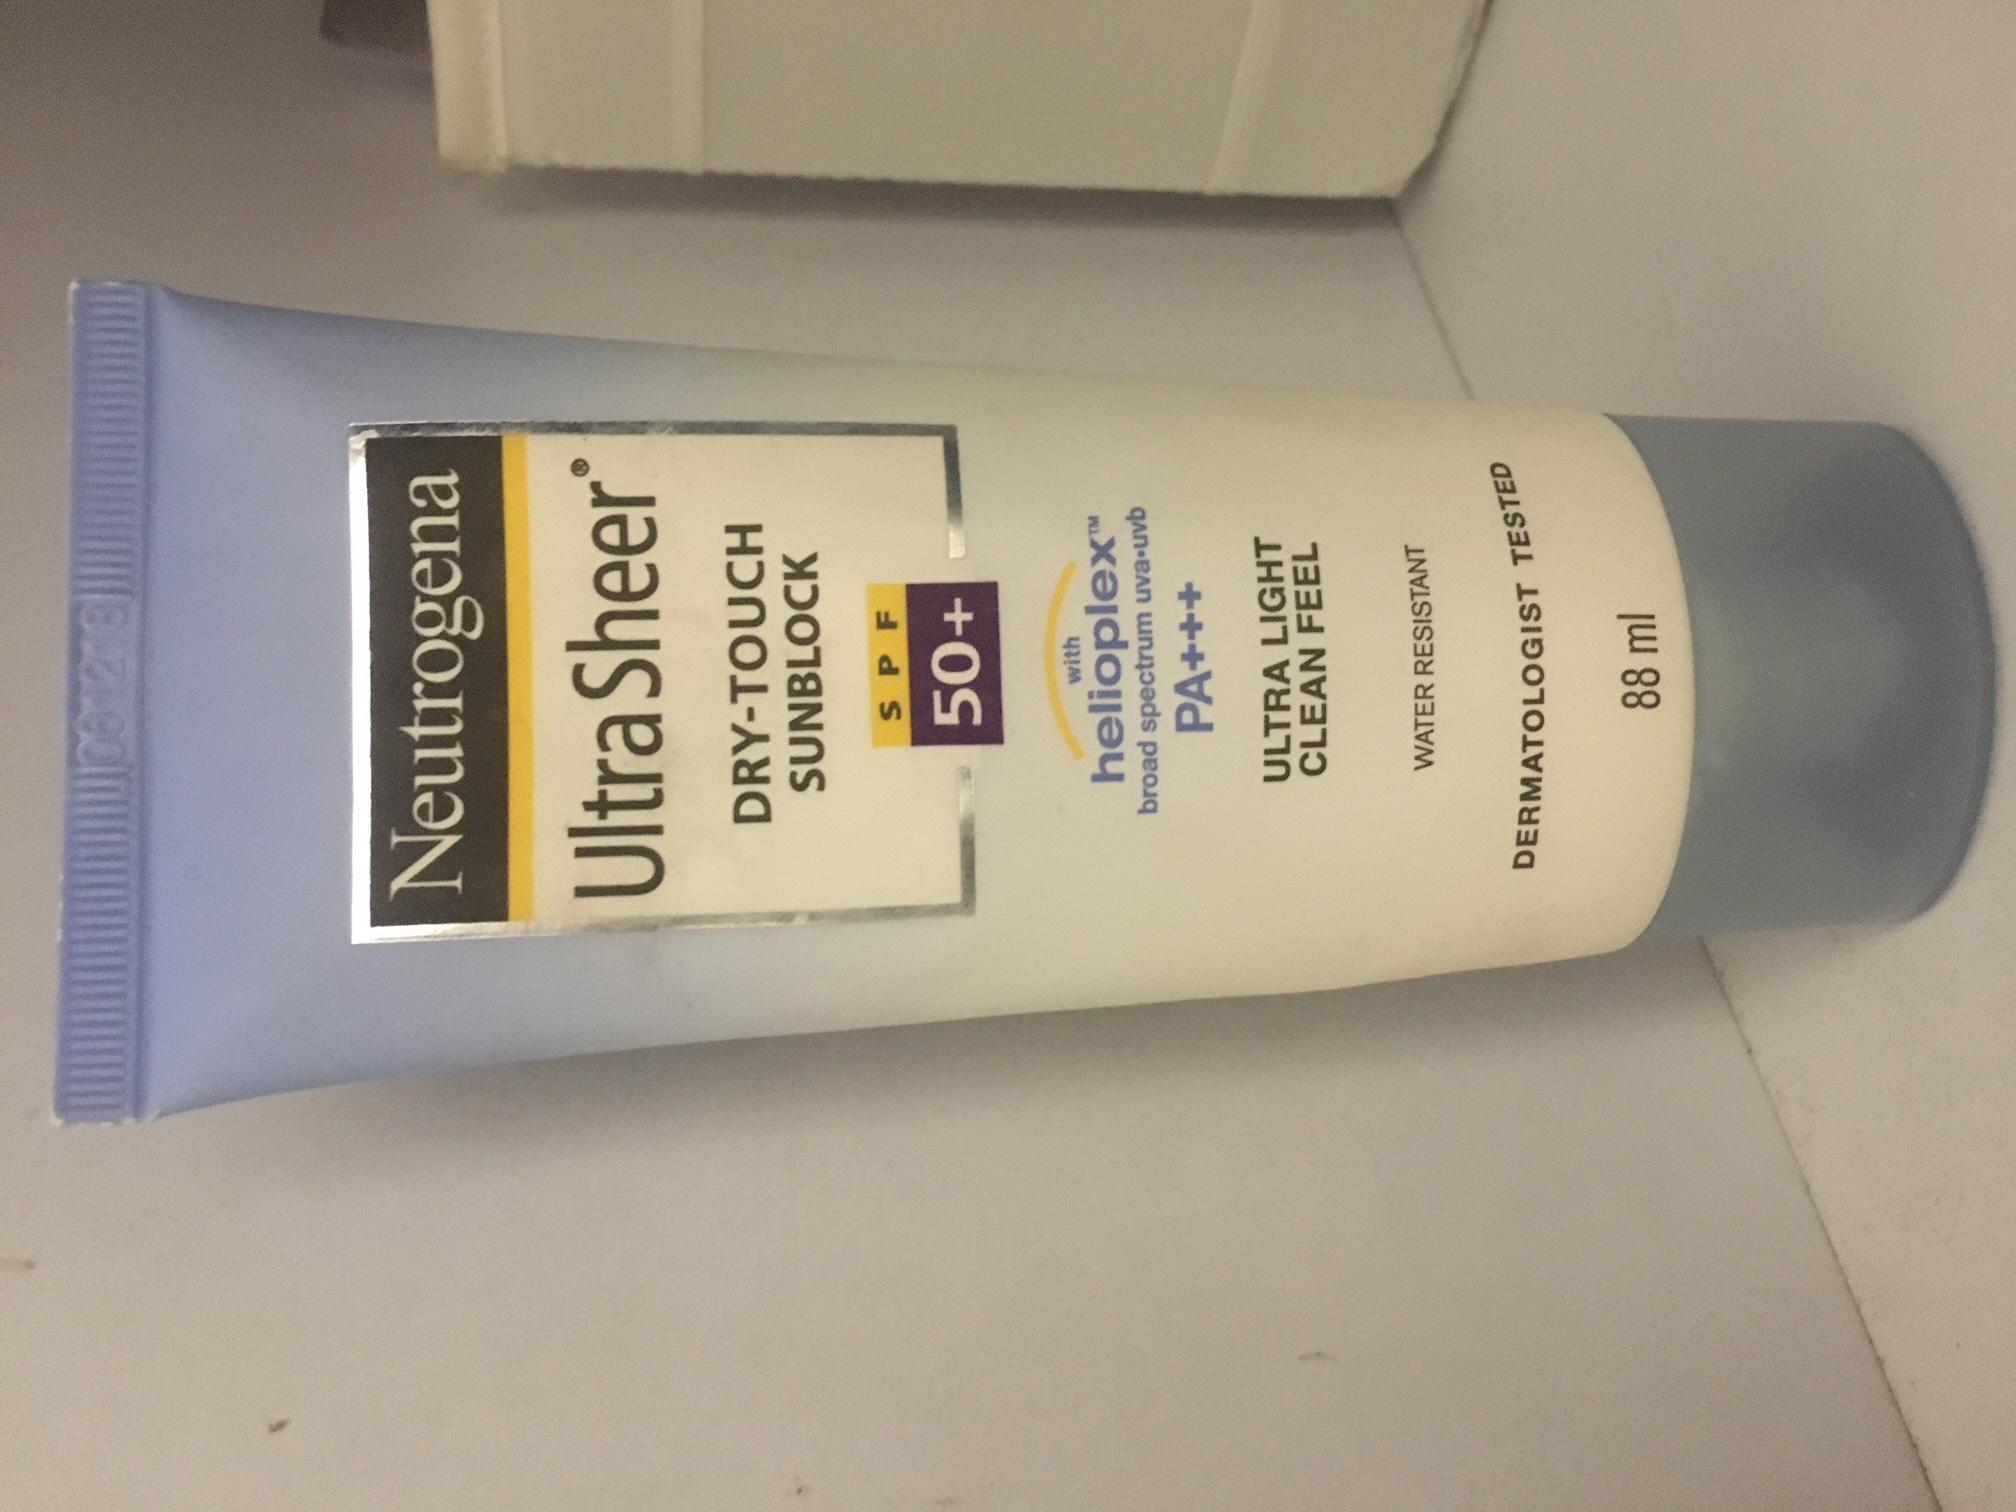 Neutrogena Ultra Sheer Dry Touch Sunscreen Broad Spectrum SPF 55-Amazing, effective and pocket friendly-By prernakapur-2